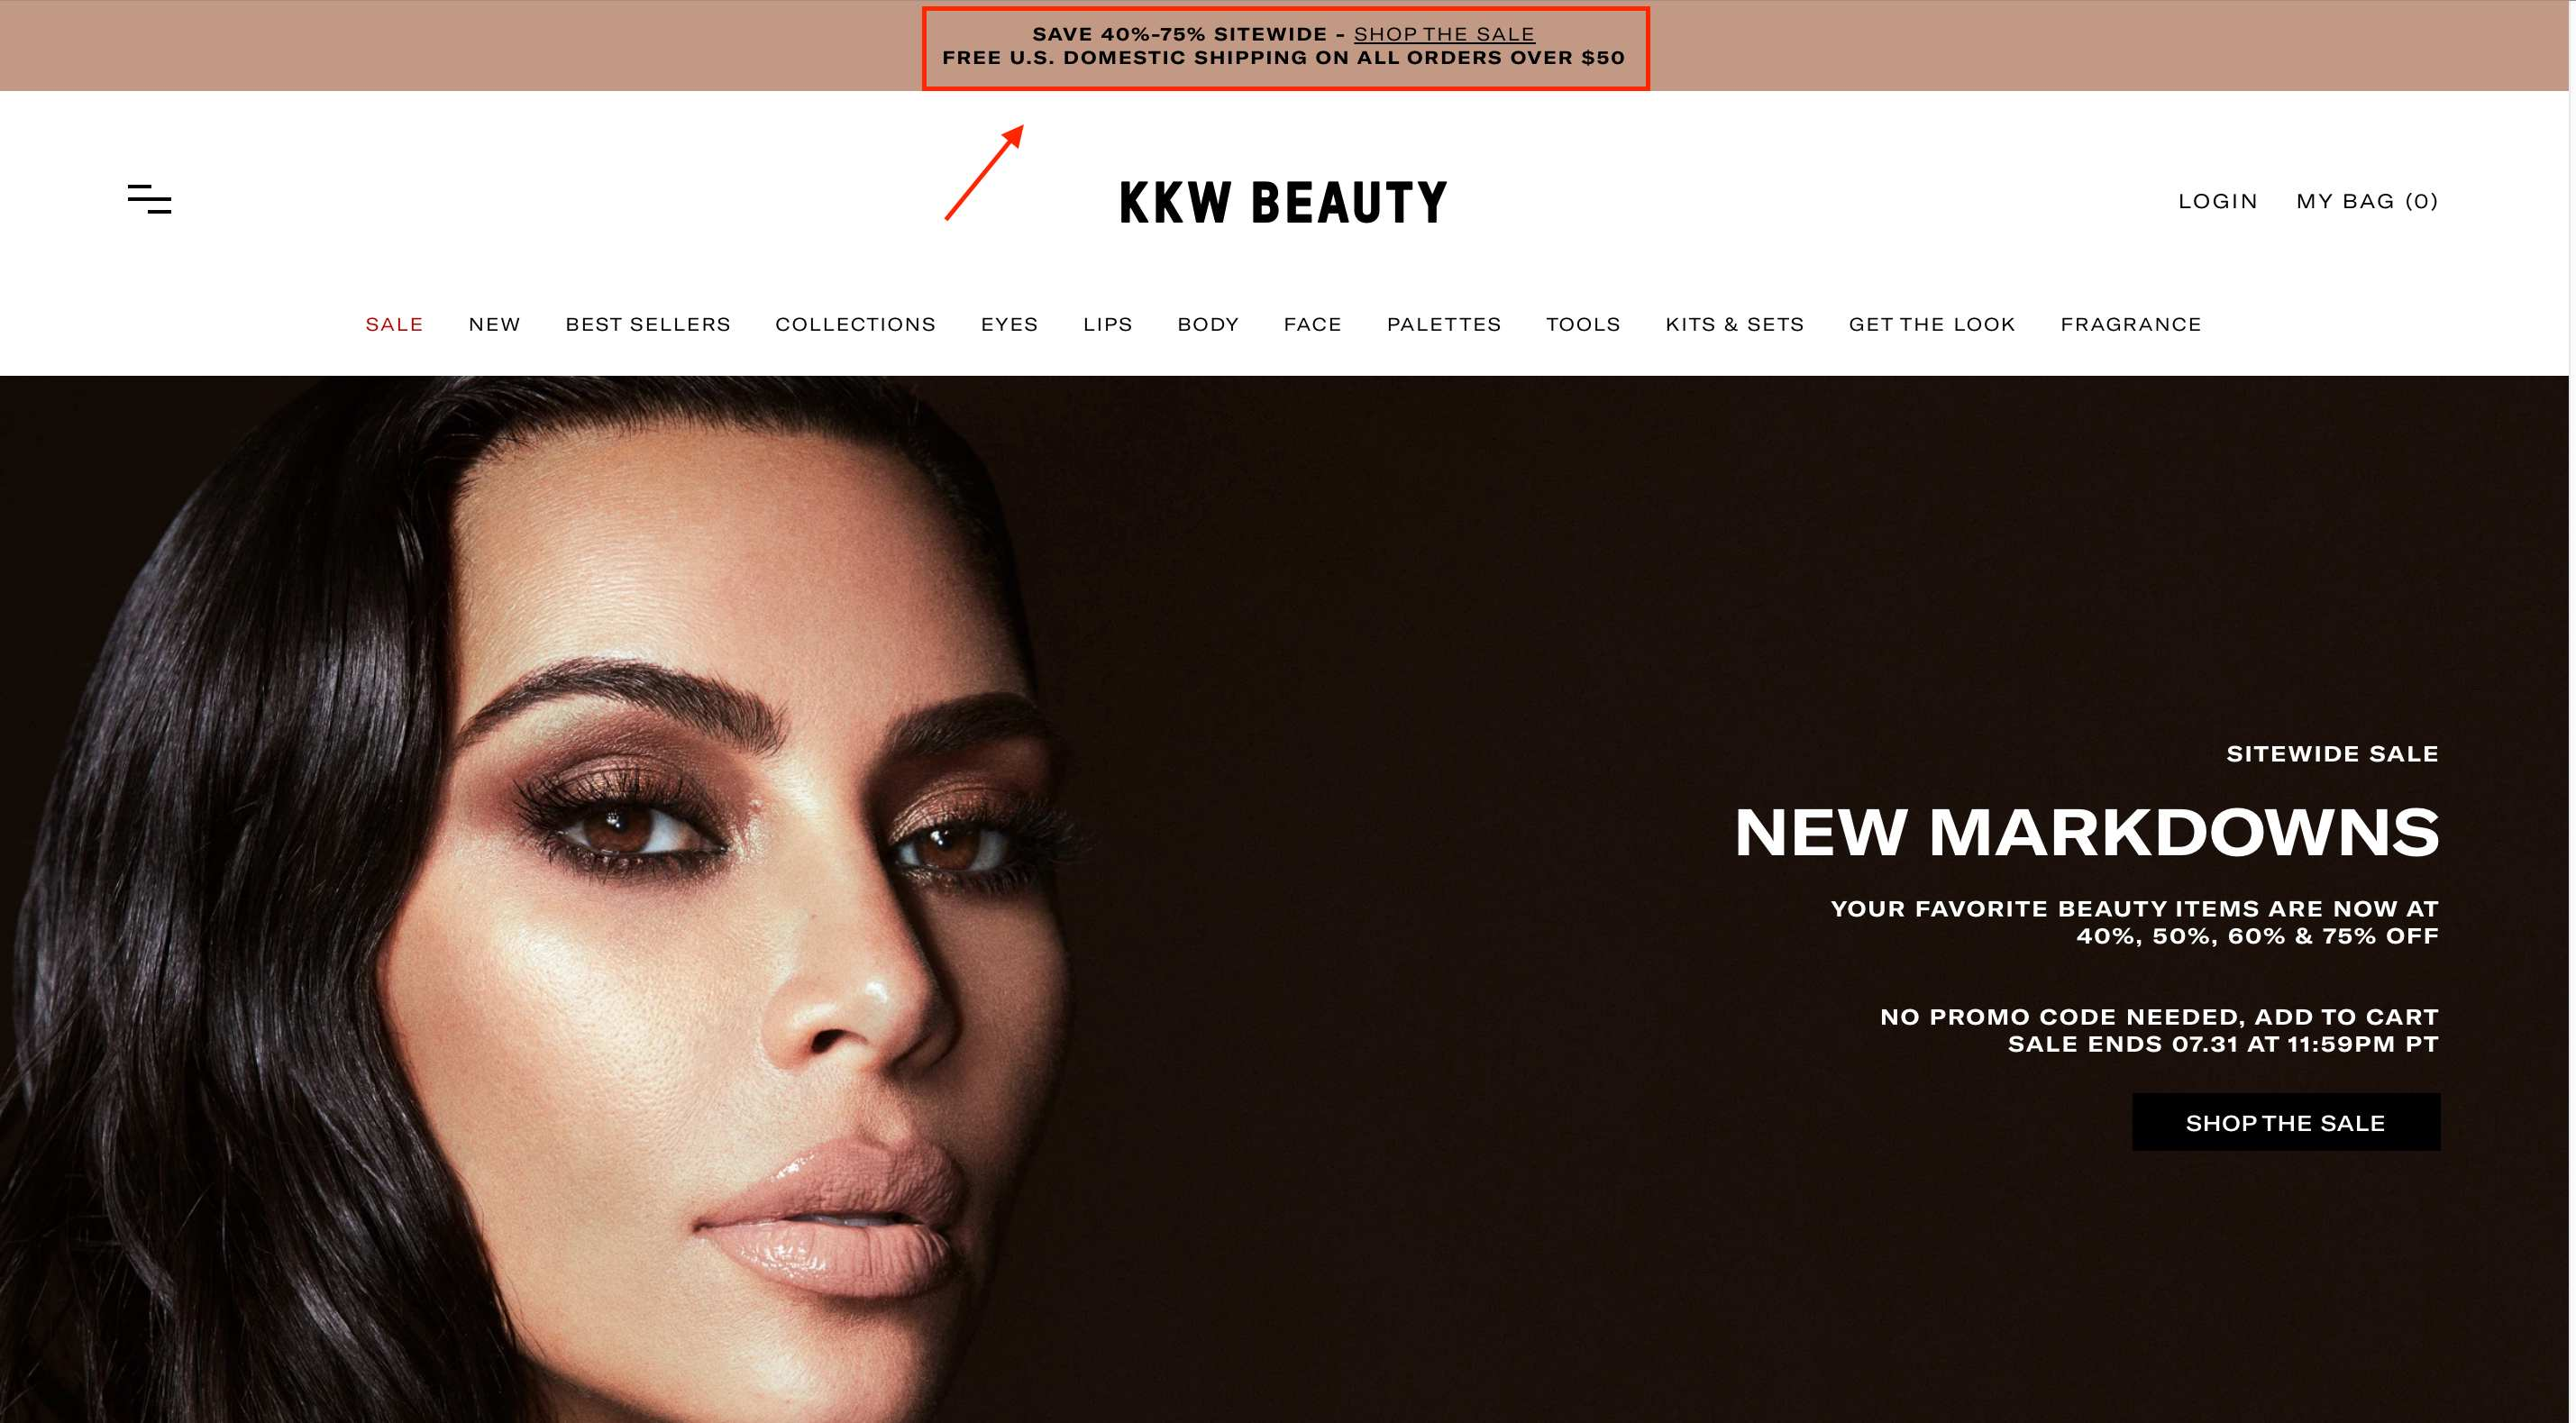 kkw beauty free shipping website conversion rate